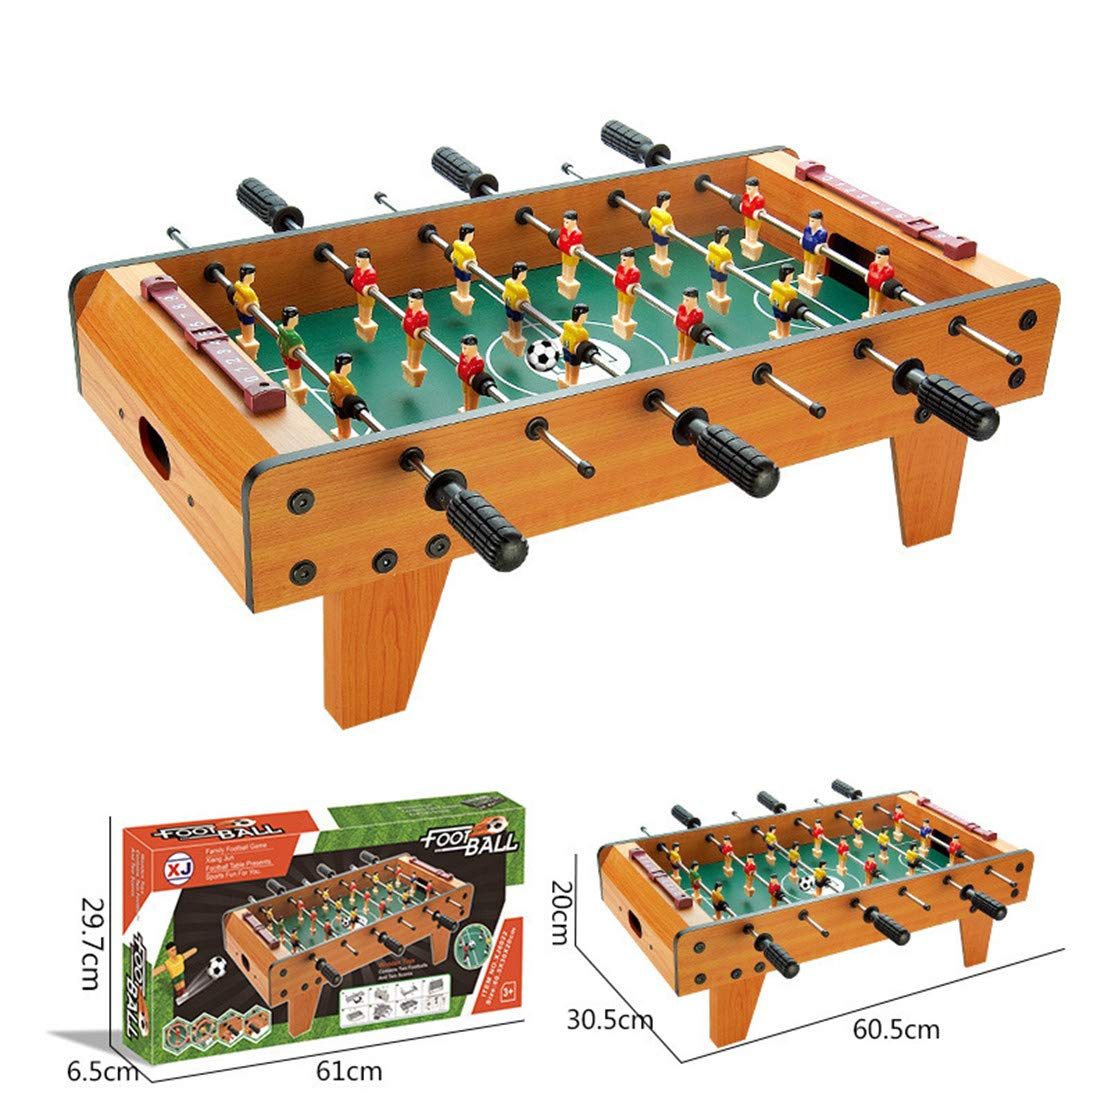 MSTQ Large Football Table Wooden Indoor Soccer Table 6 Football Table Double Battle Desktop Board Game Children Sports Toys 9 Models (6022, L) by MSTQ